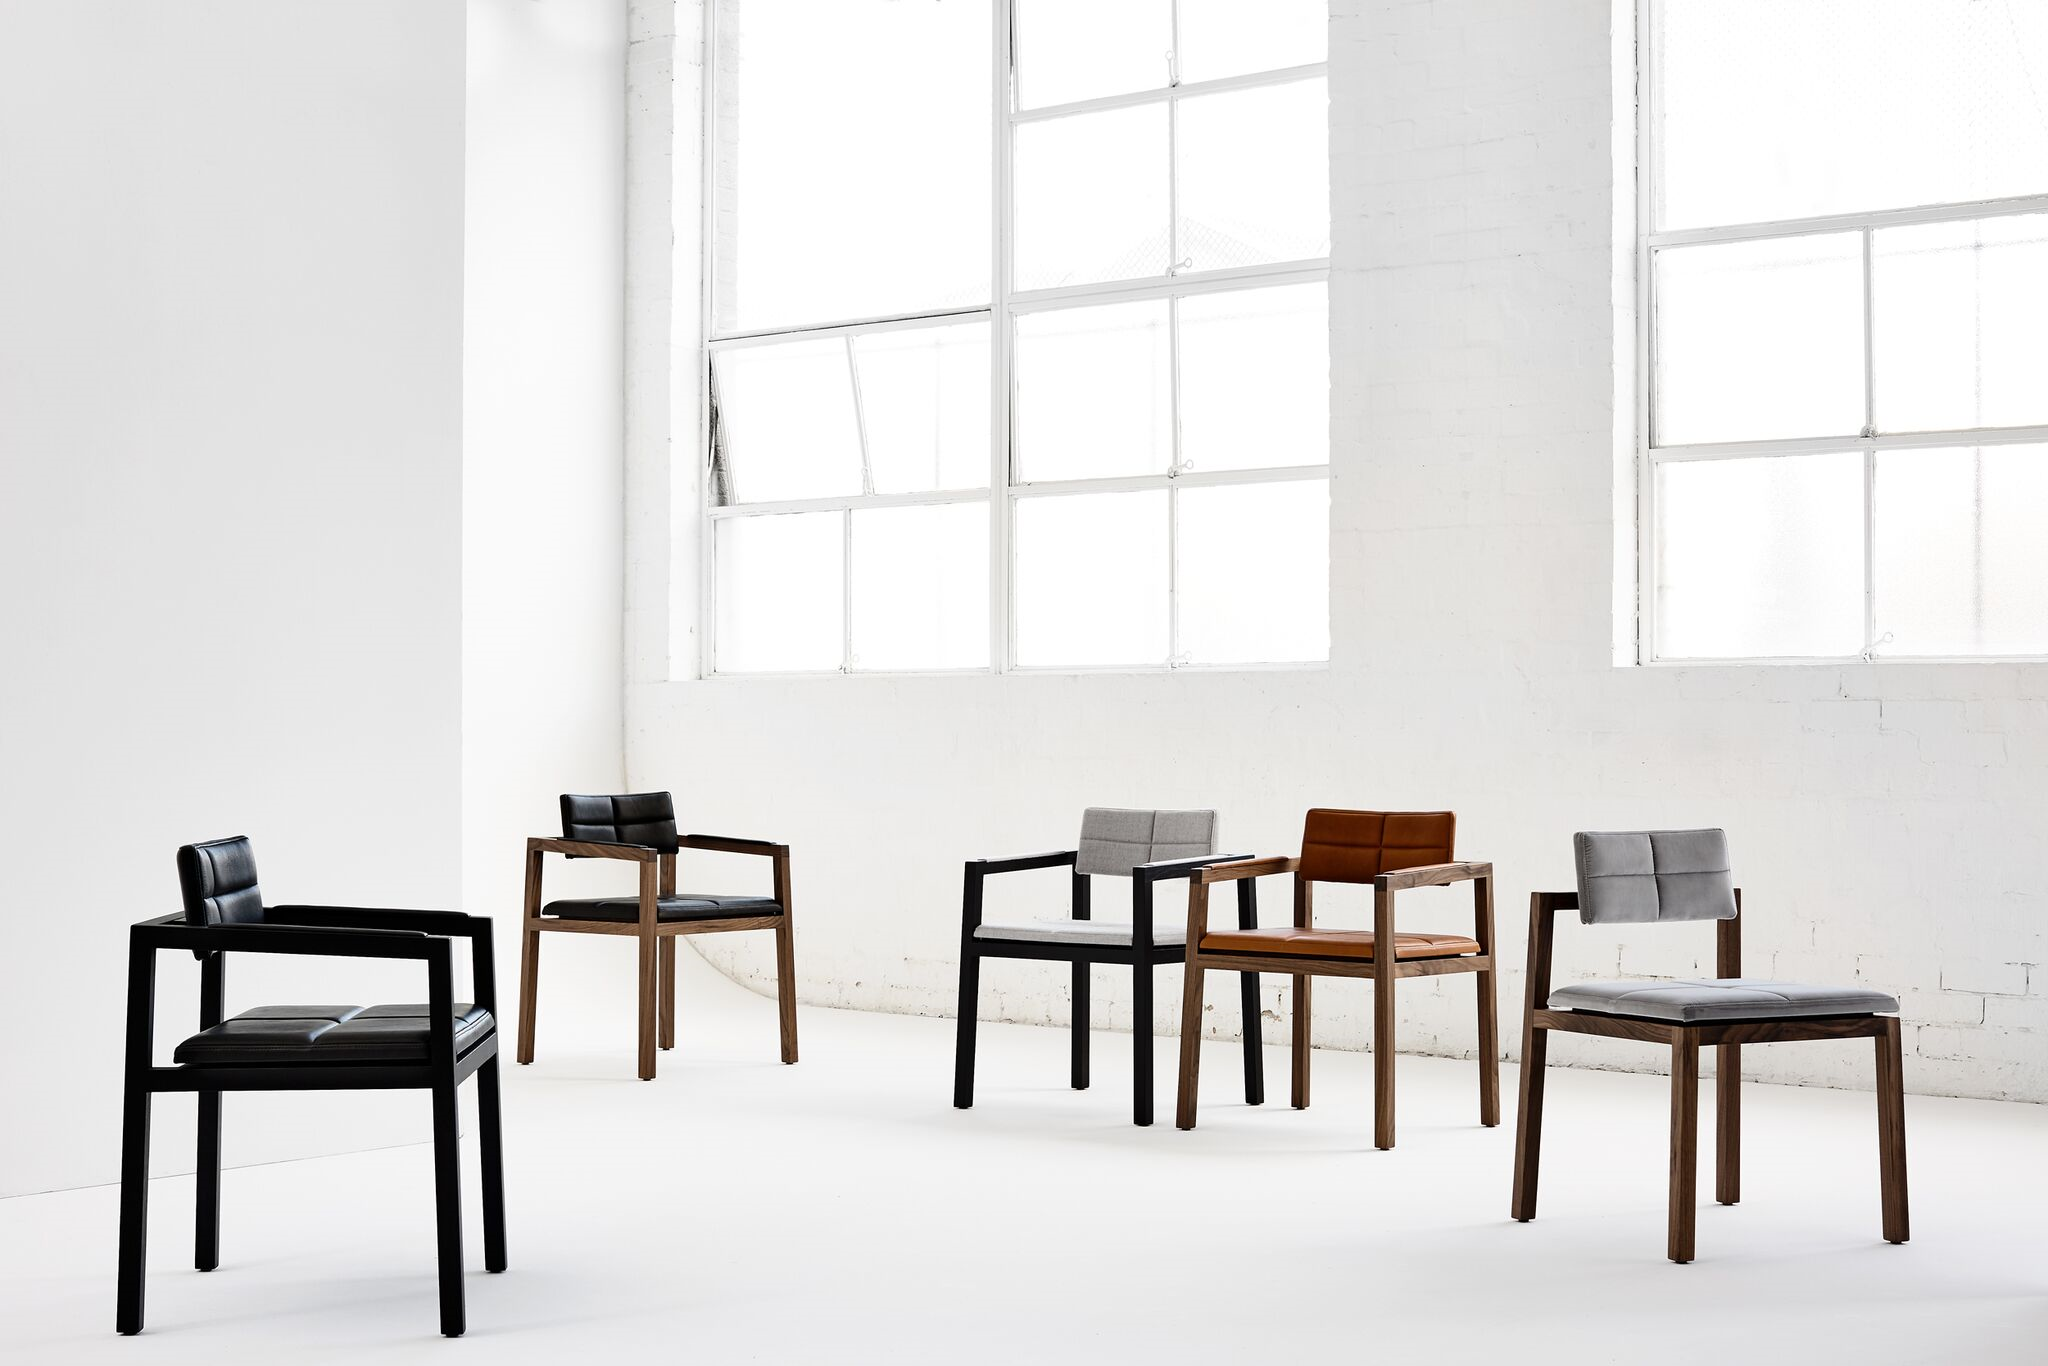 Gallery Of Mila Chair By Franco Crea Local Australian Furniture & Commercial Industrial Design Richmond, Melbourne Image 10